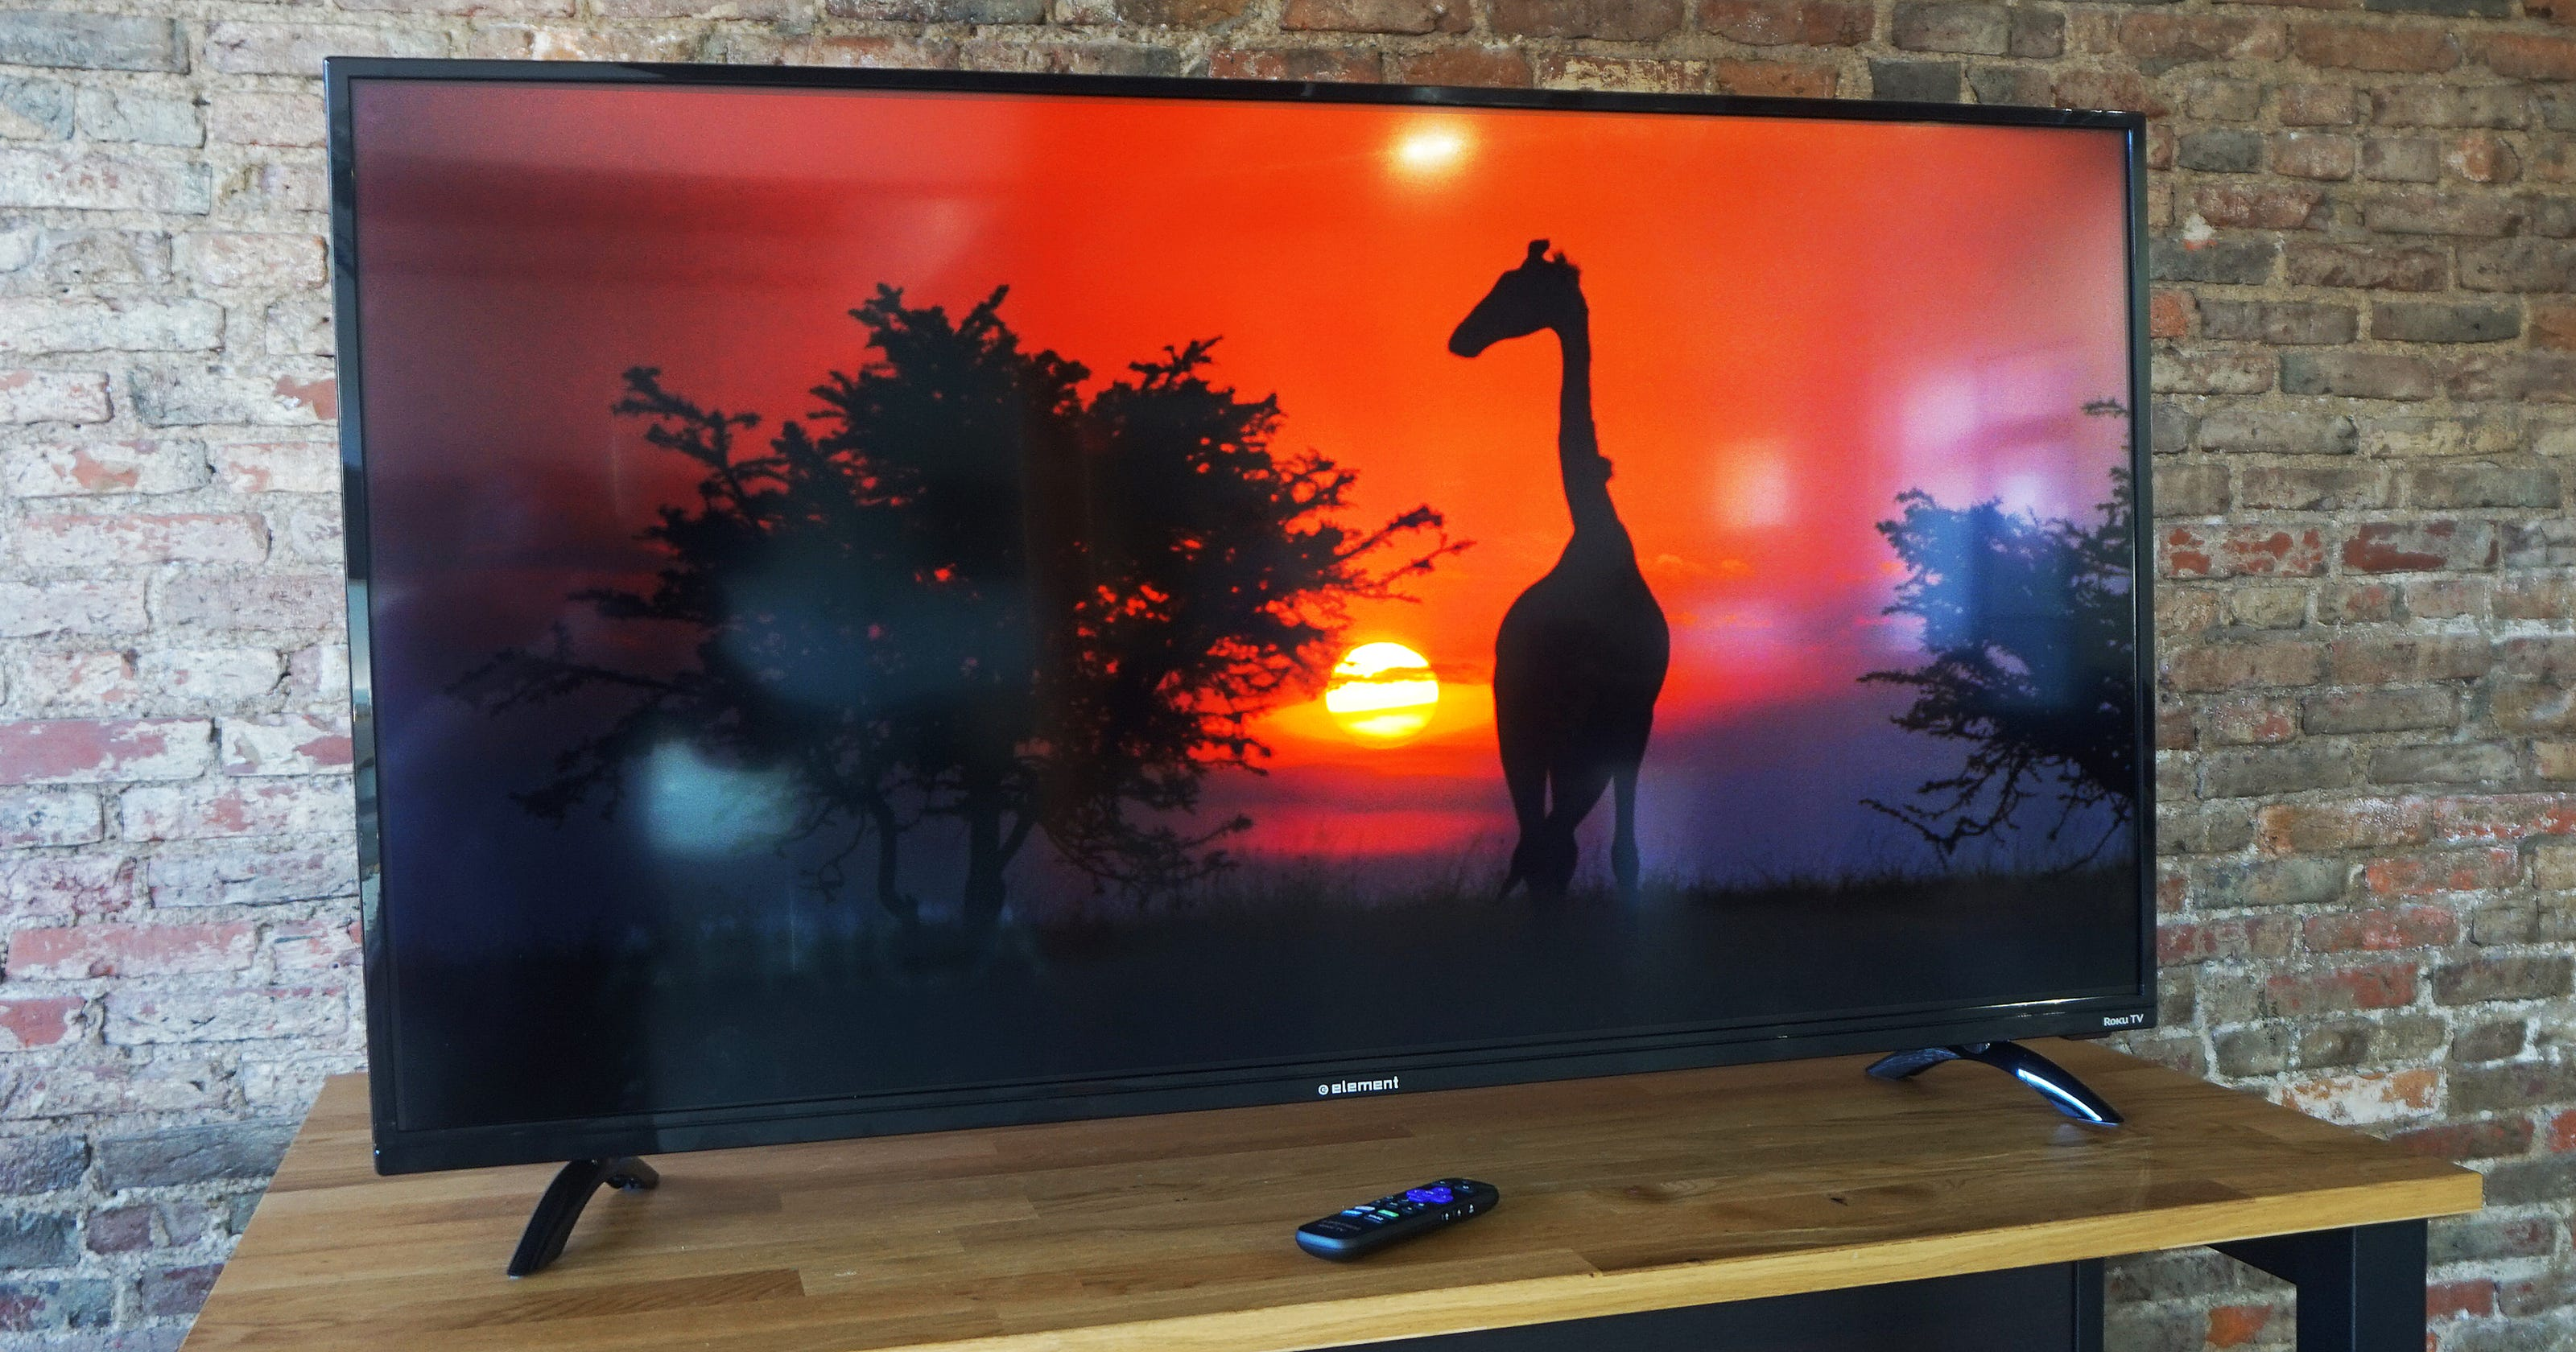 Consumer Reports': Samsung, Roku Smart TVs may be vulnerable to hackers